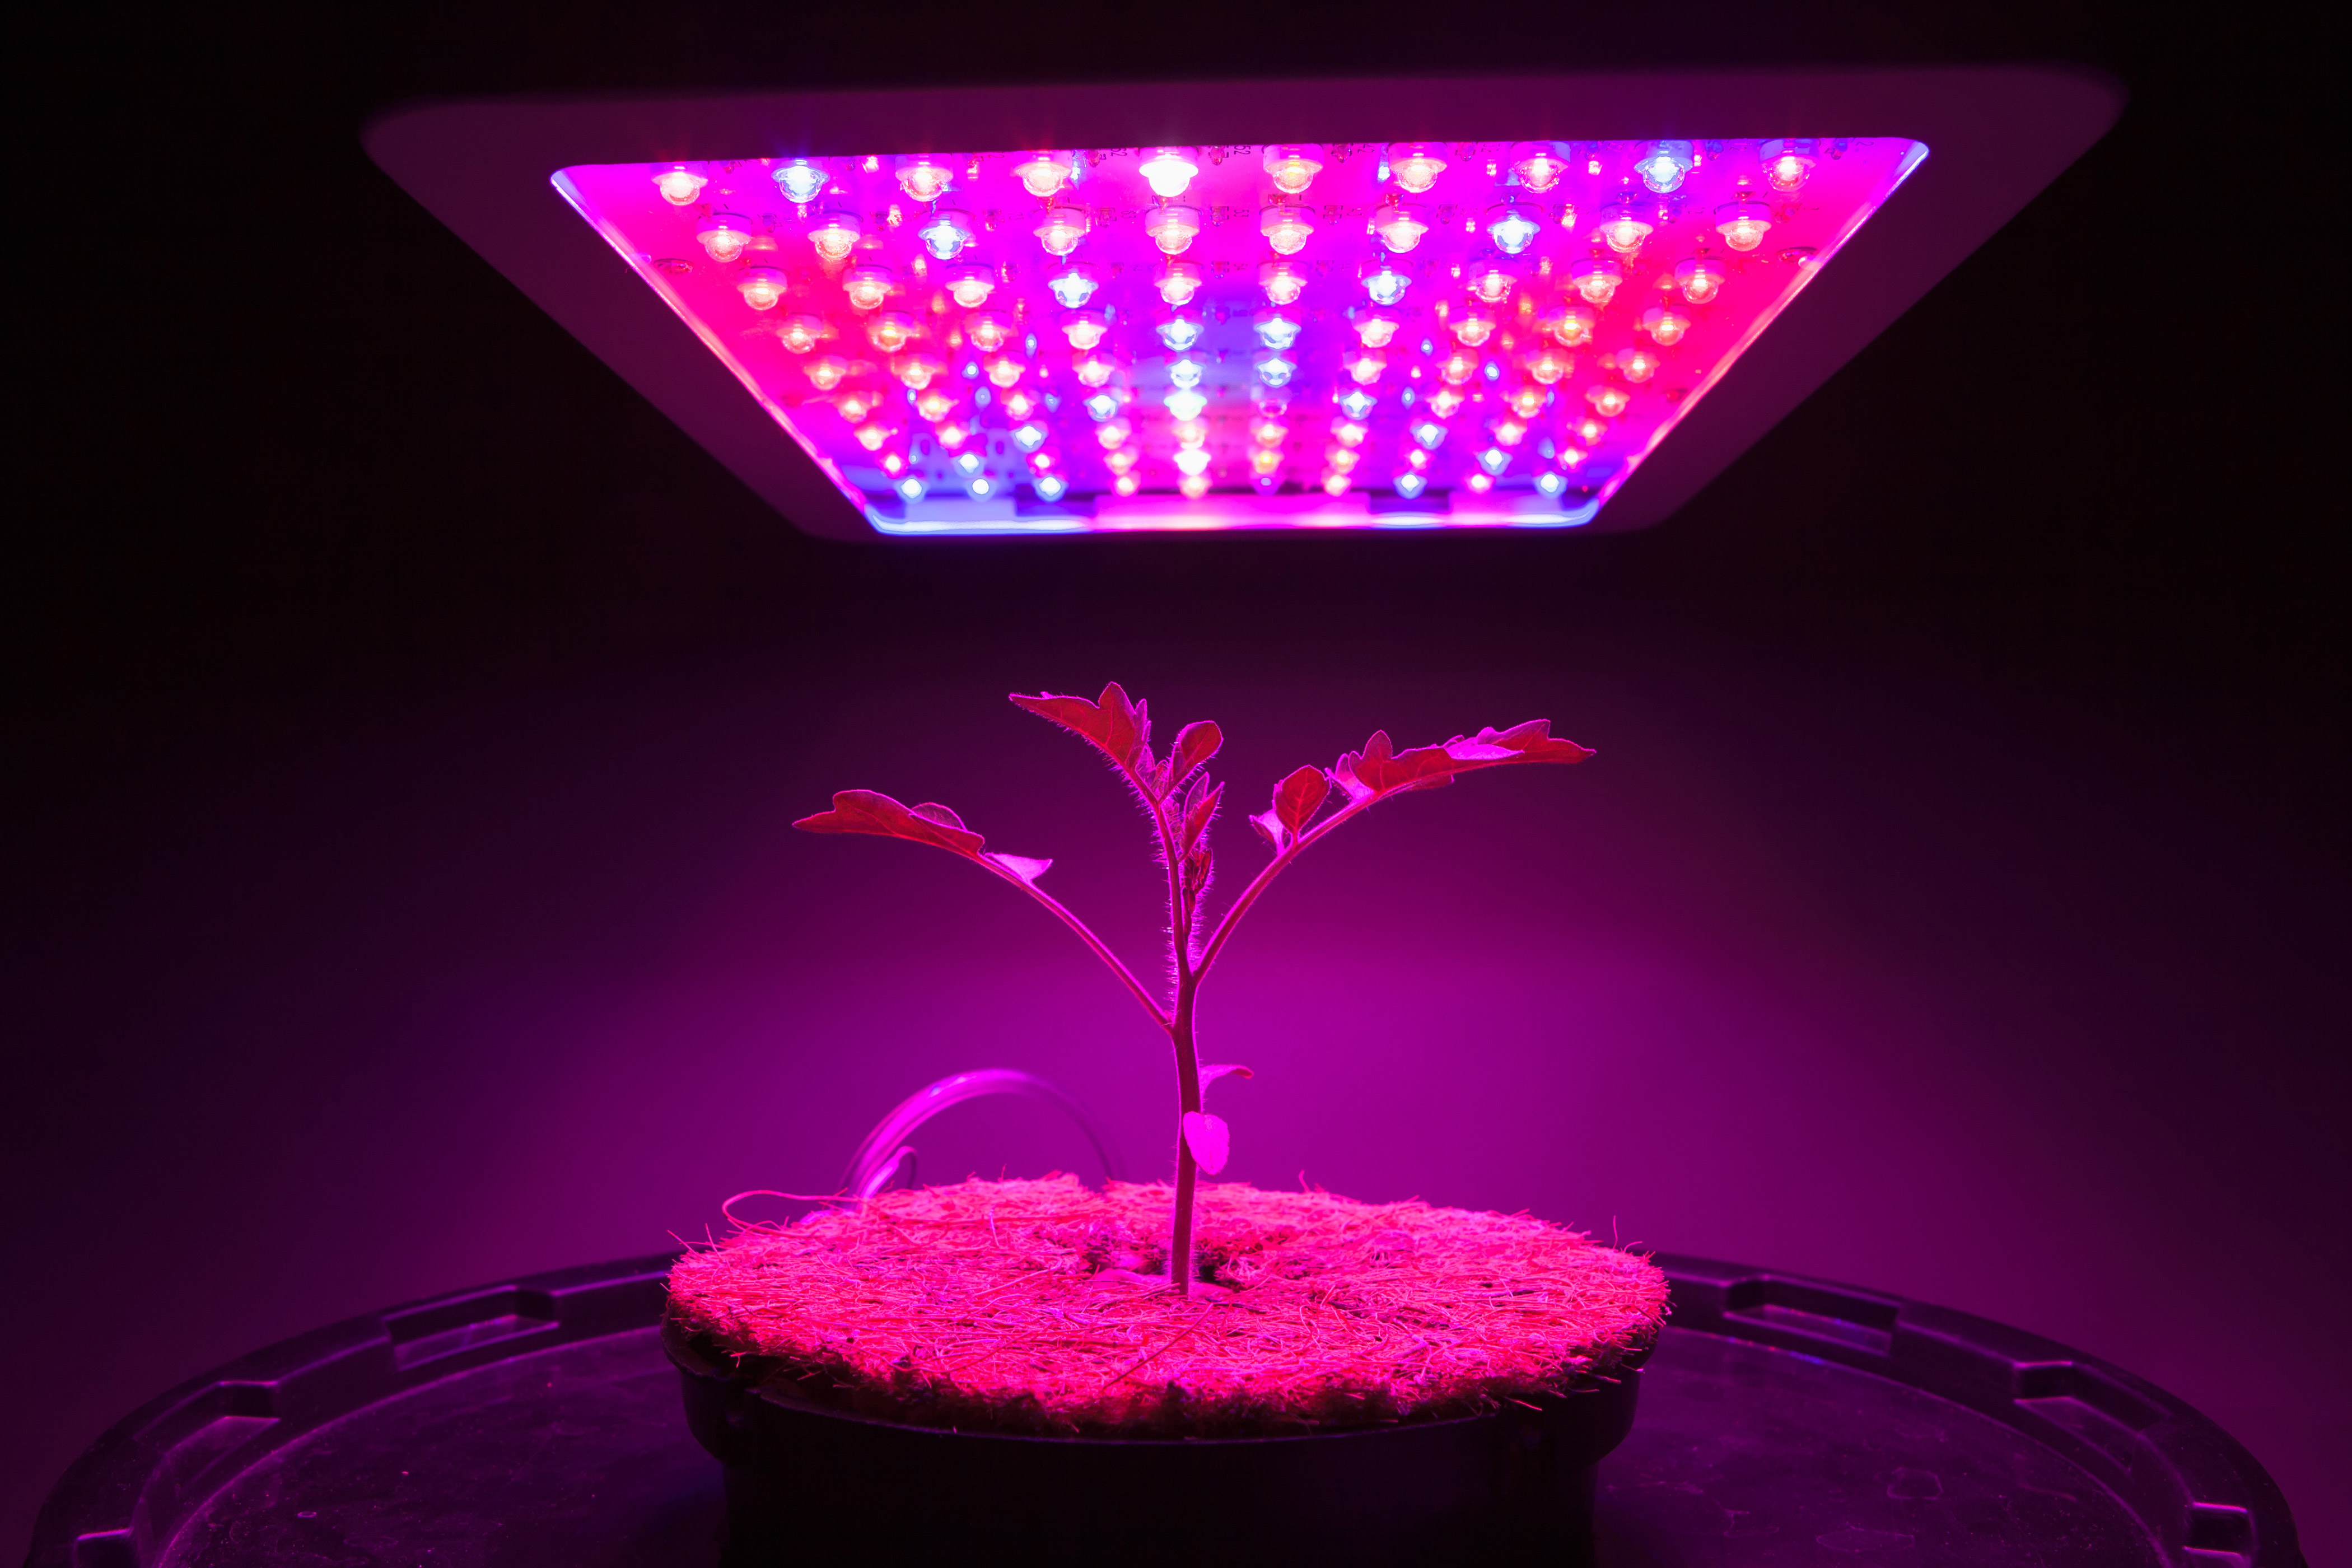 Mouser's Horticulture Site Focuses on LEDs, Sensors, IoT